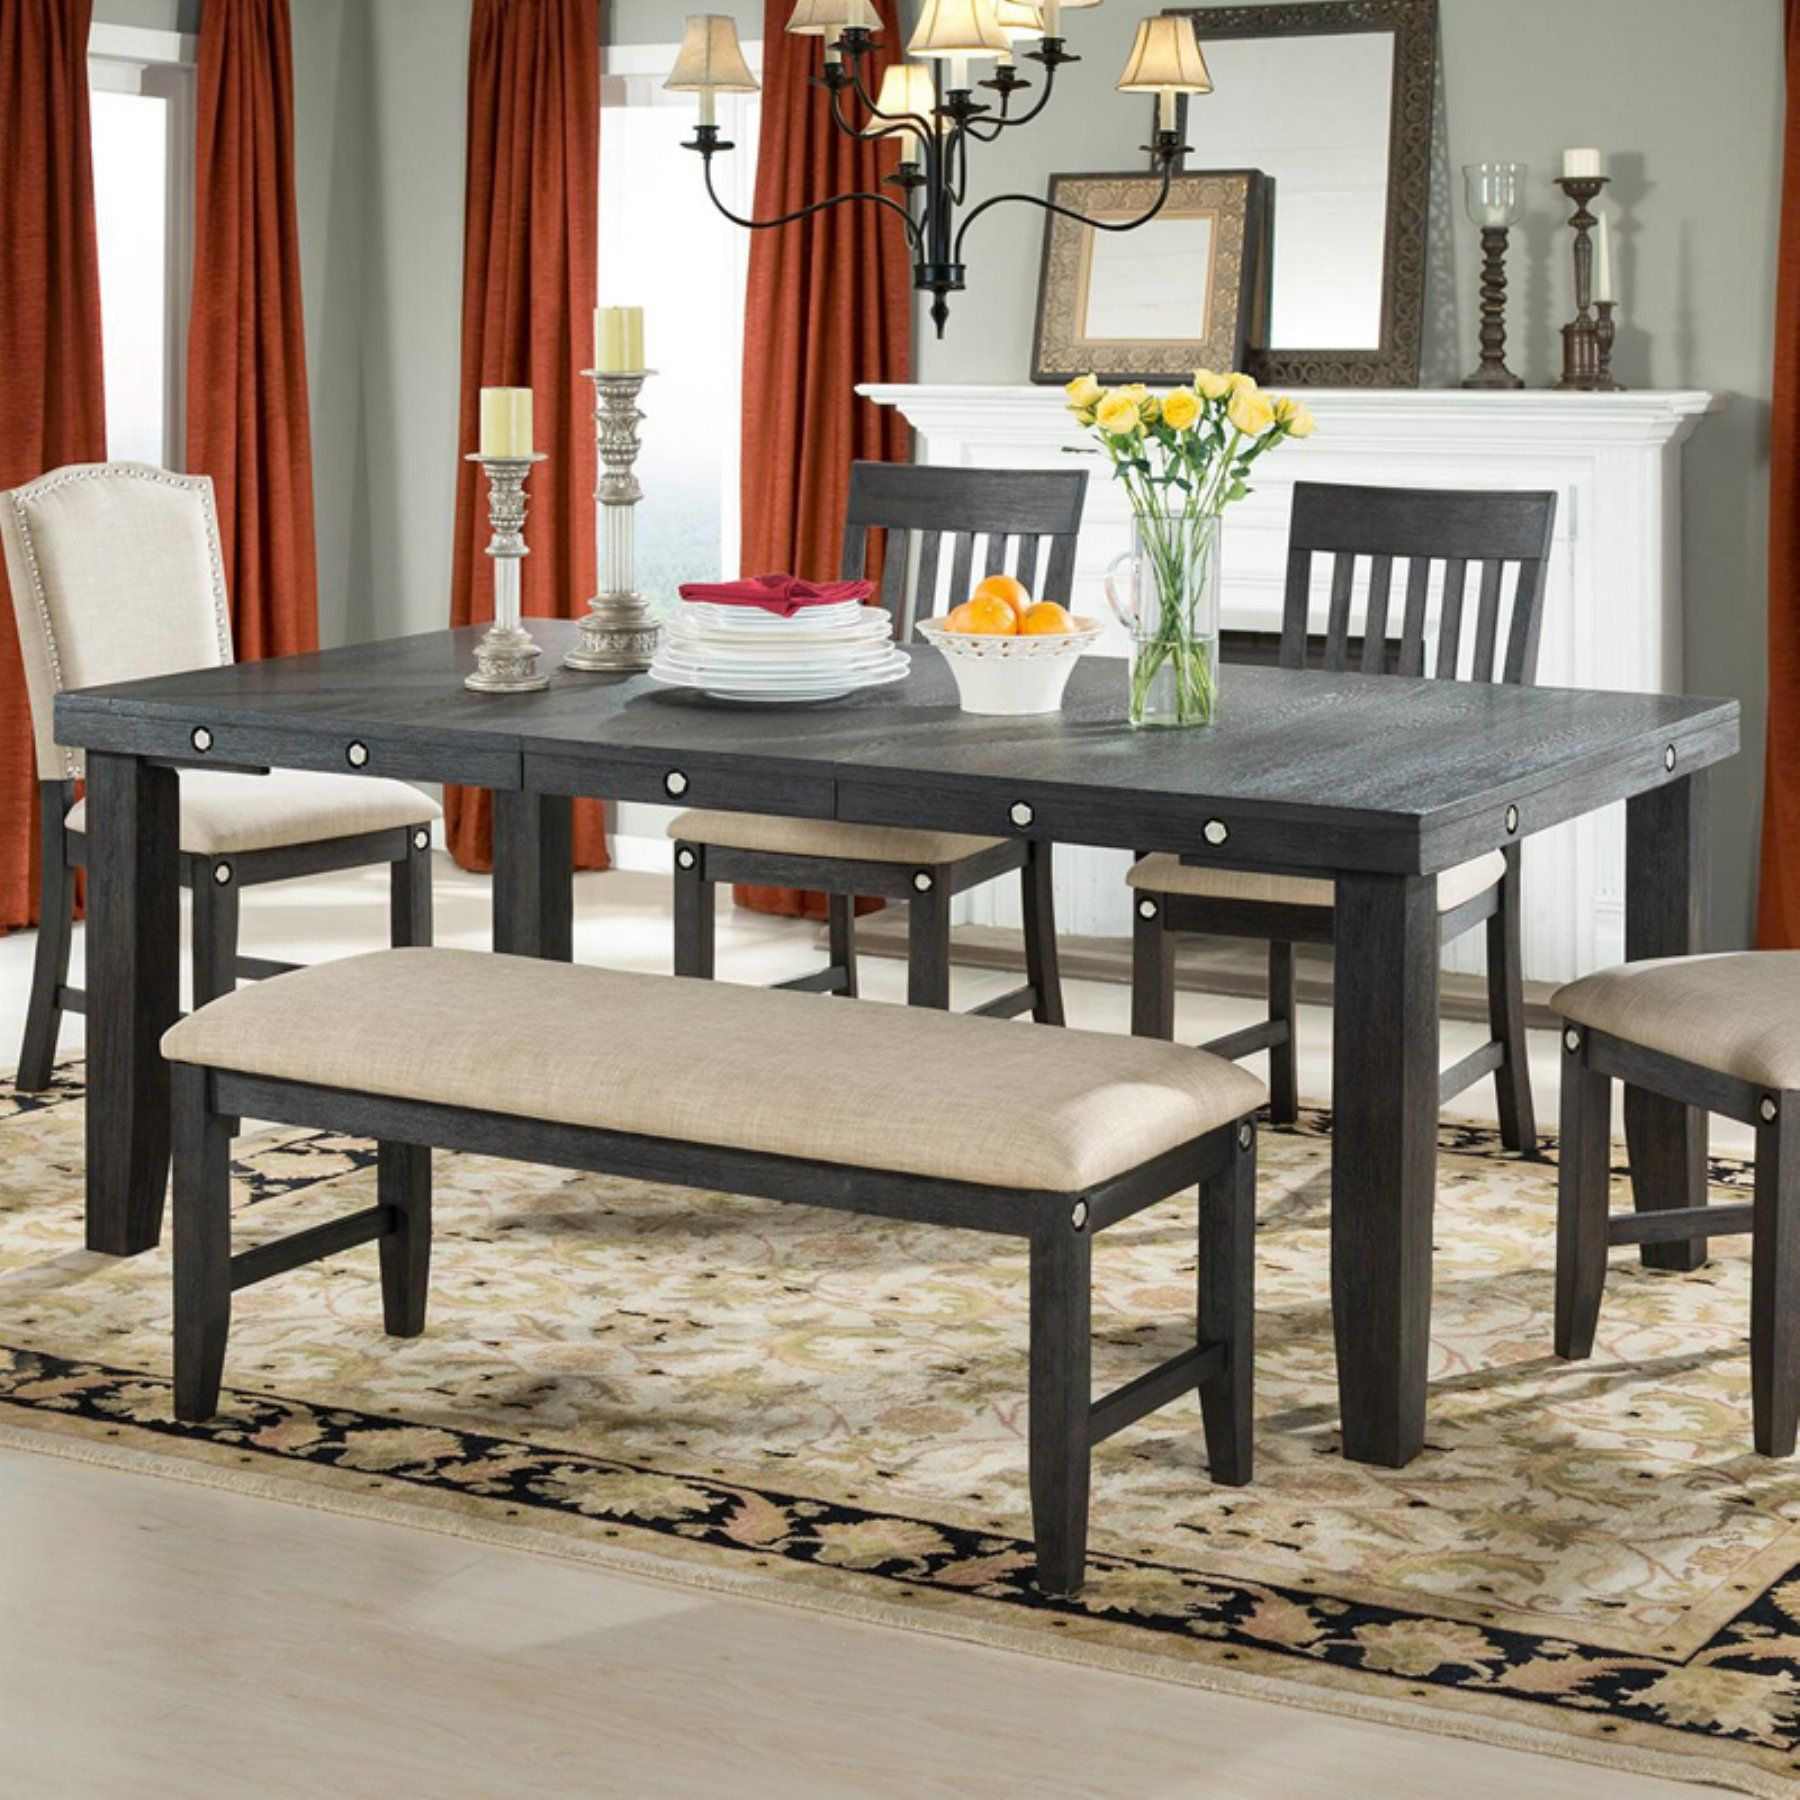 Vilo Home Marseille Provence Dining Table – Vh1100 | Products With Regard To Most Current Pattonsburg 5 Piece Dining Sets (View 12 of 20)